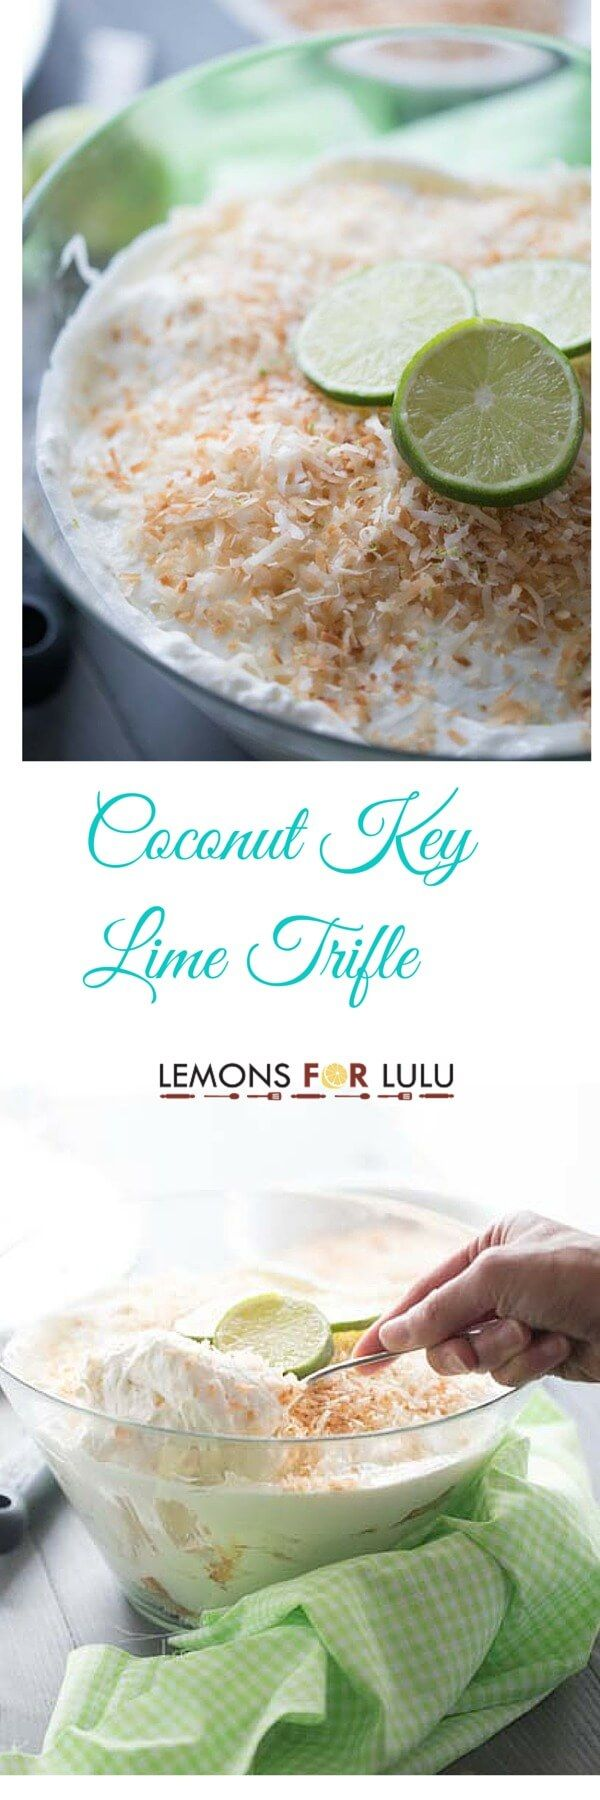 Love key lime?  Then this simple trifle recipe is for you! Angel food cake, cream cheese flavored with key lime and whipped cream are all you need for this no-bake treat! lemonsforlulu.com